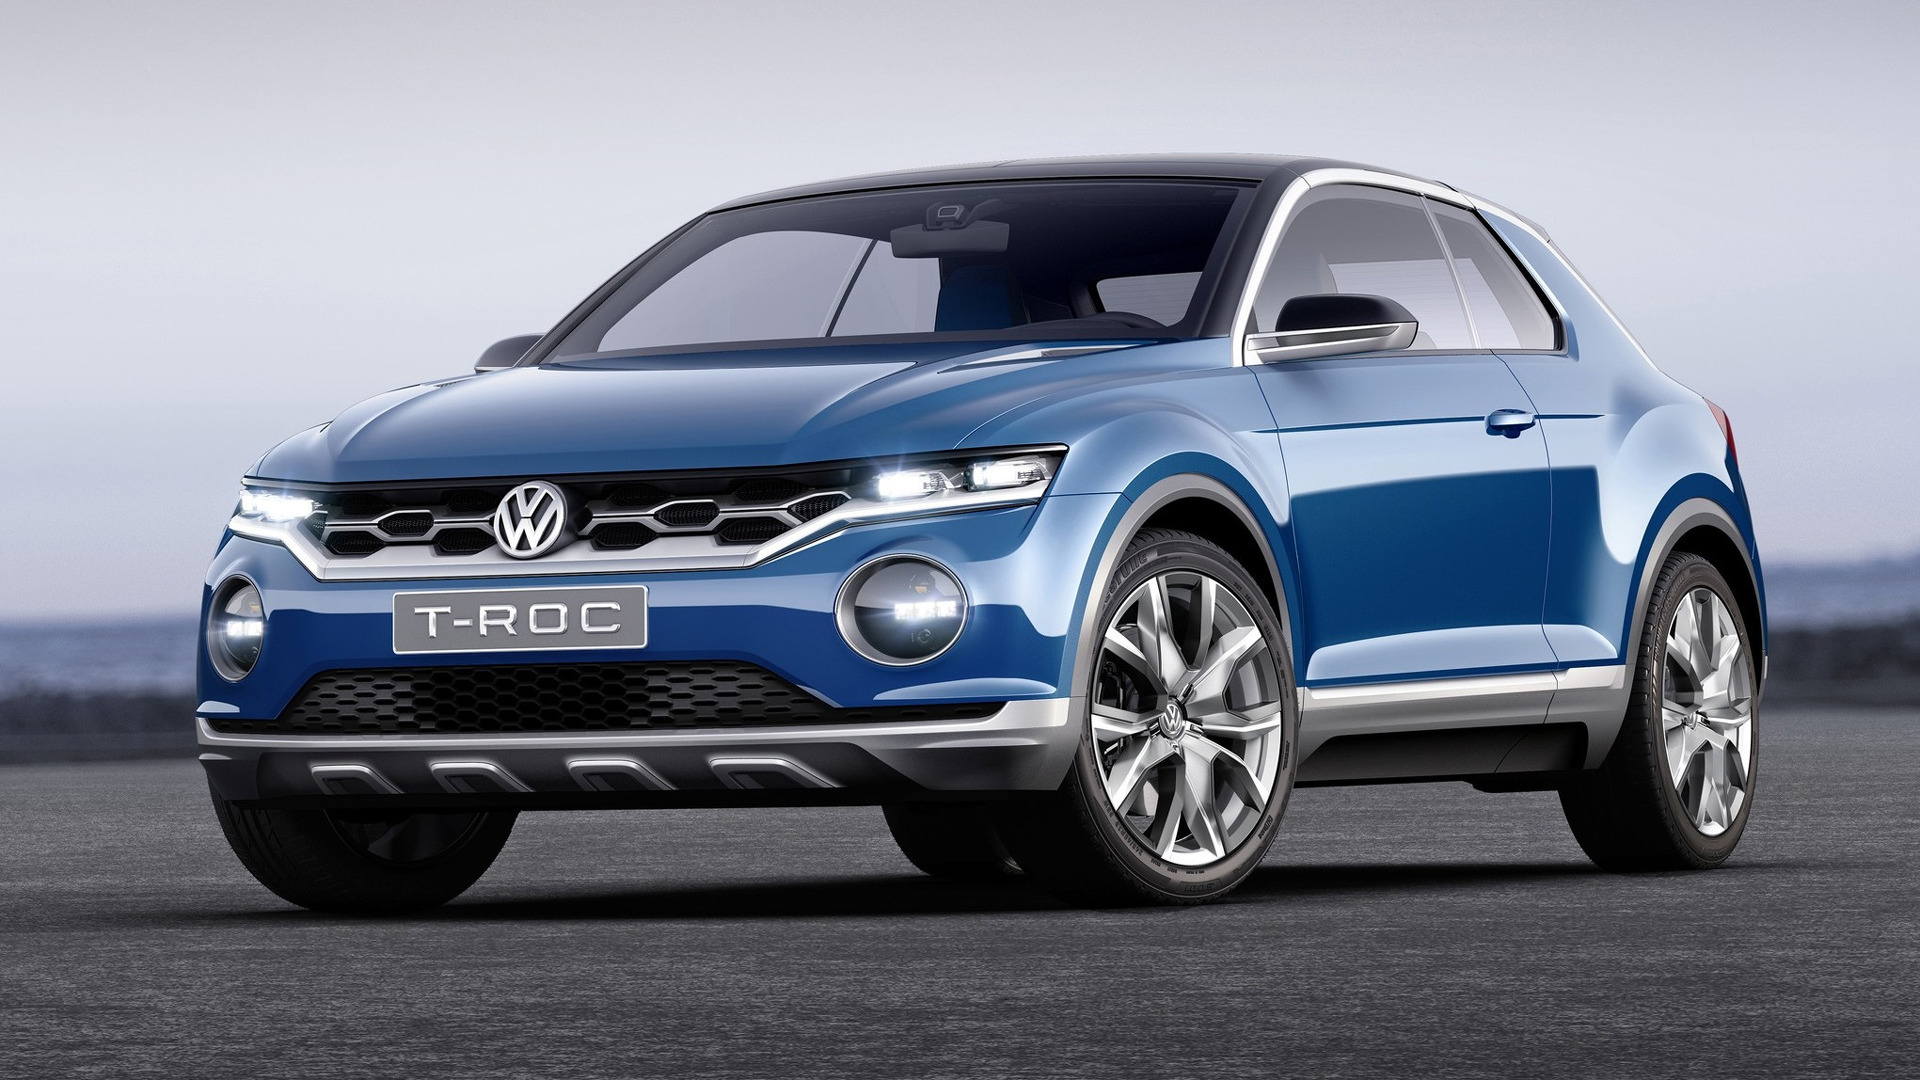 Vw T Roc Compact Crossover Set For 2019 Launch In North